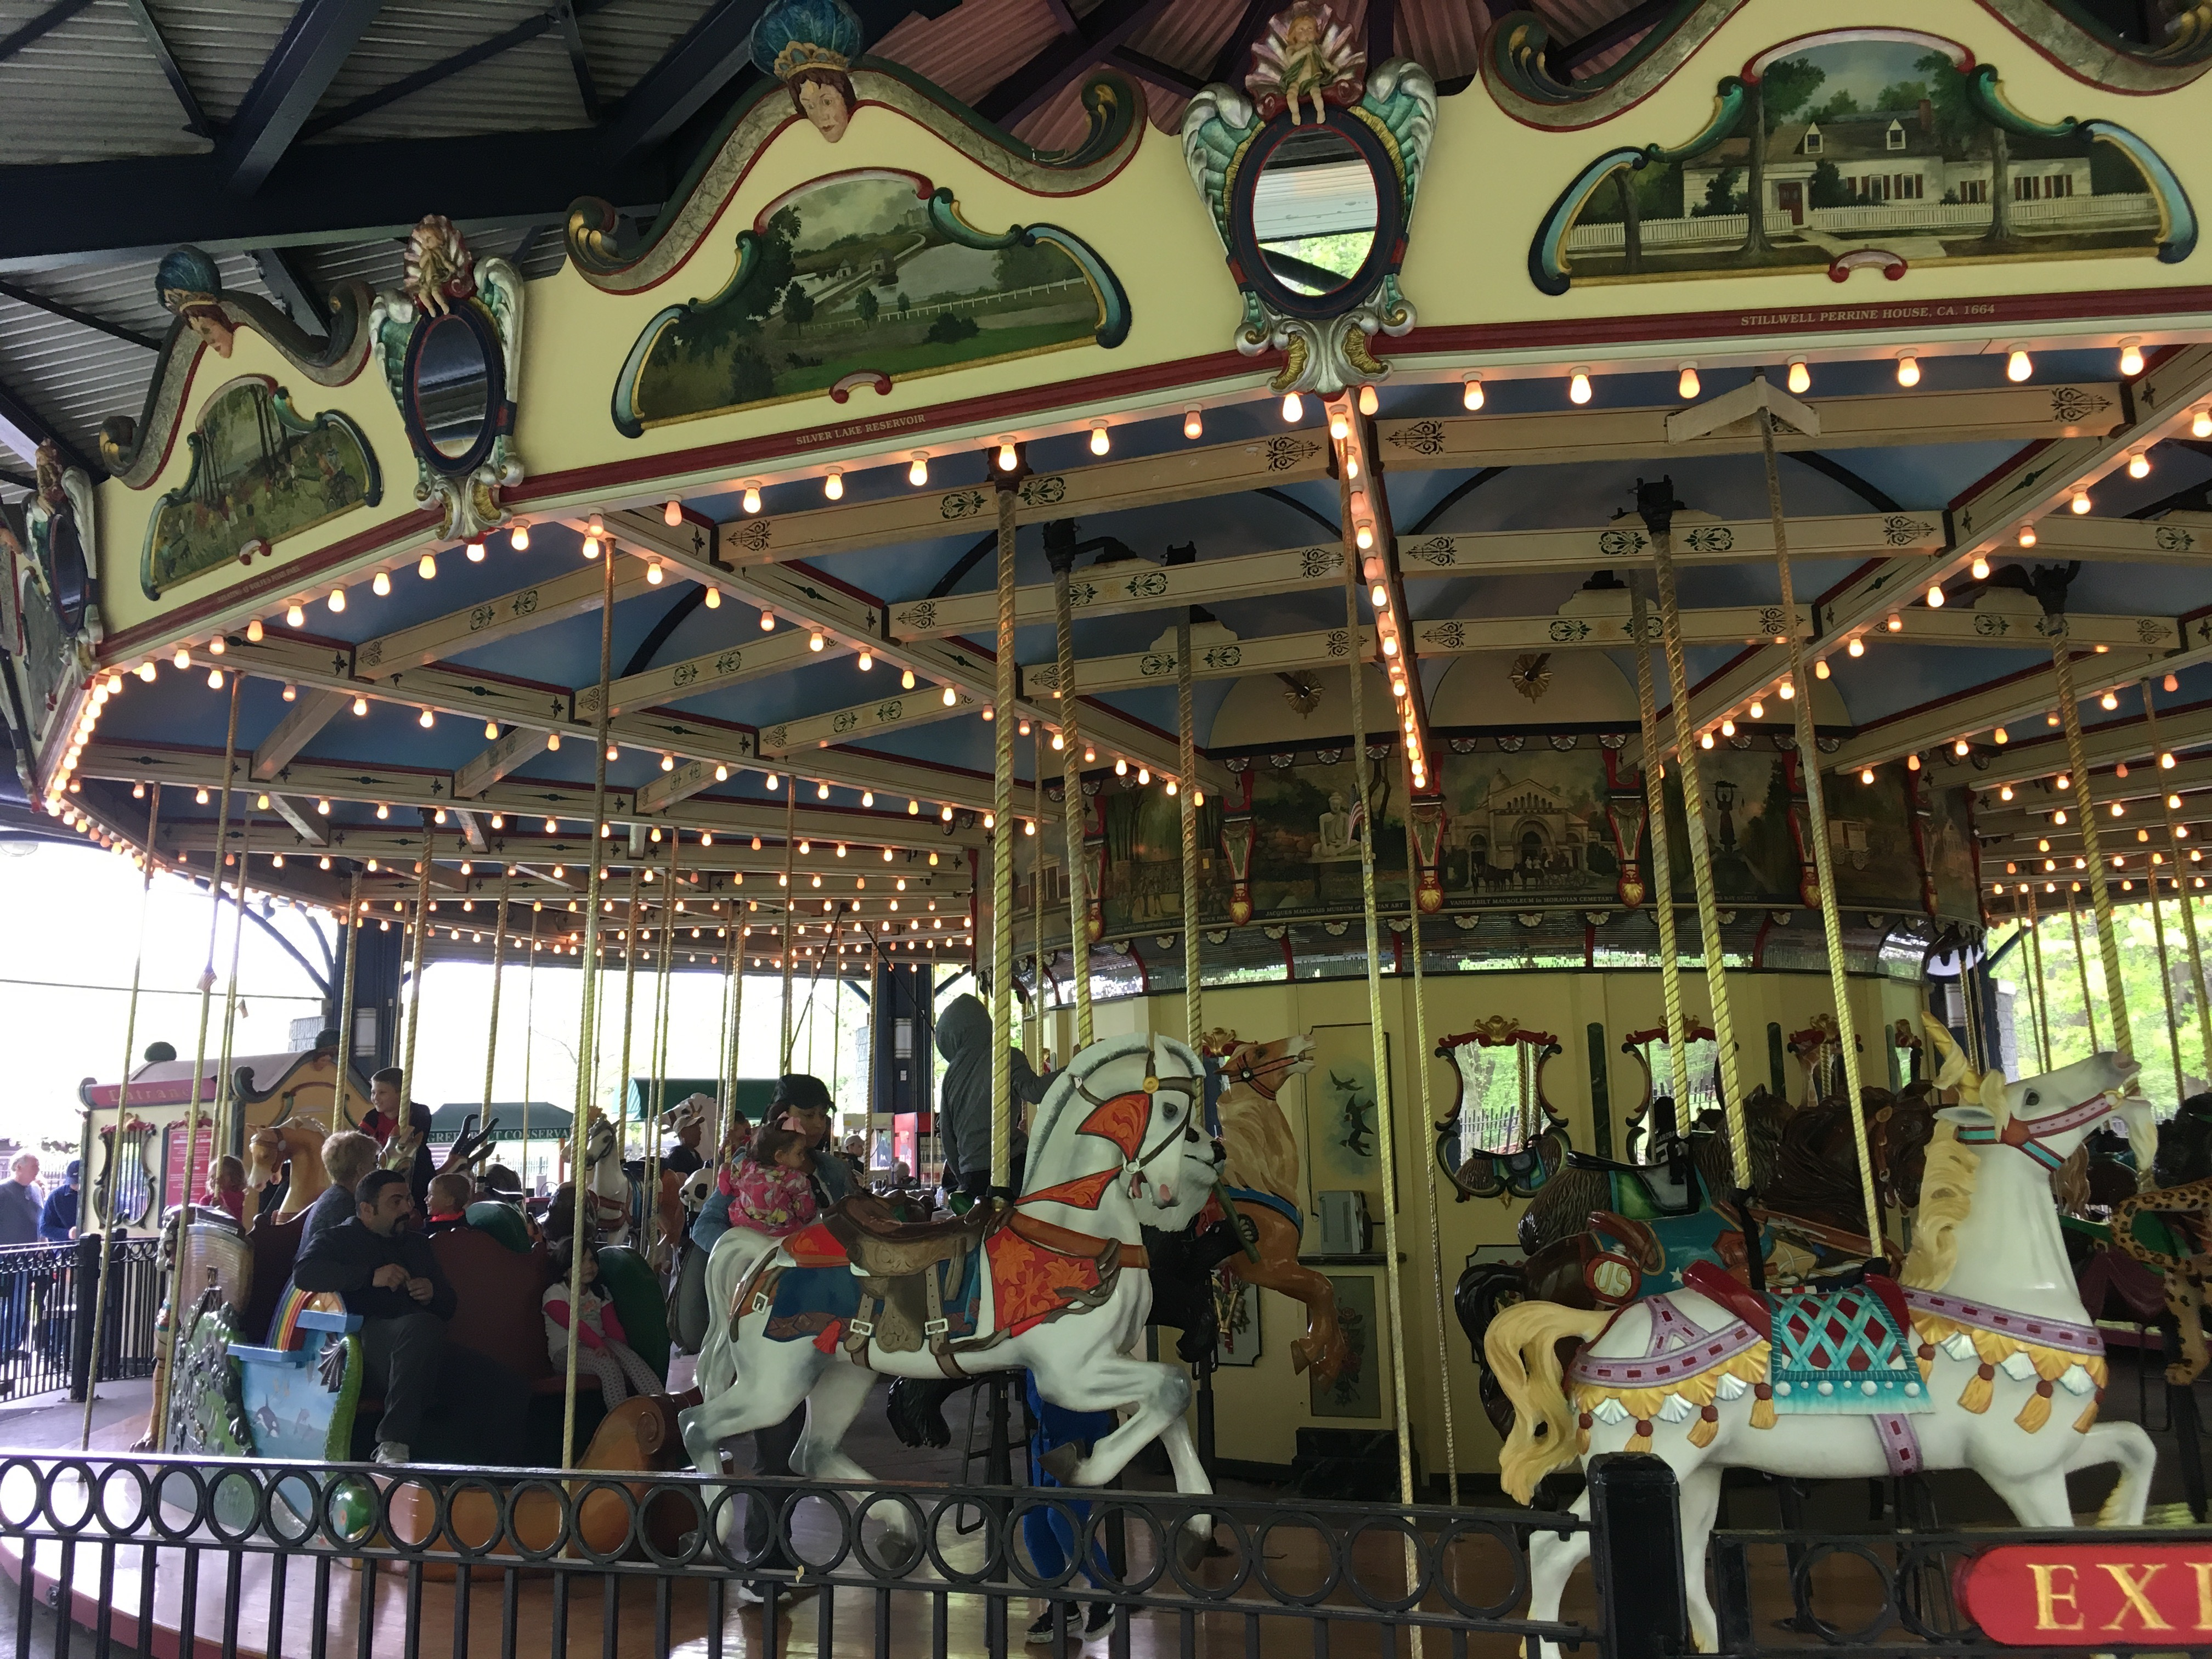 Carousel for All Children to remain closed through 20 due to ...